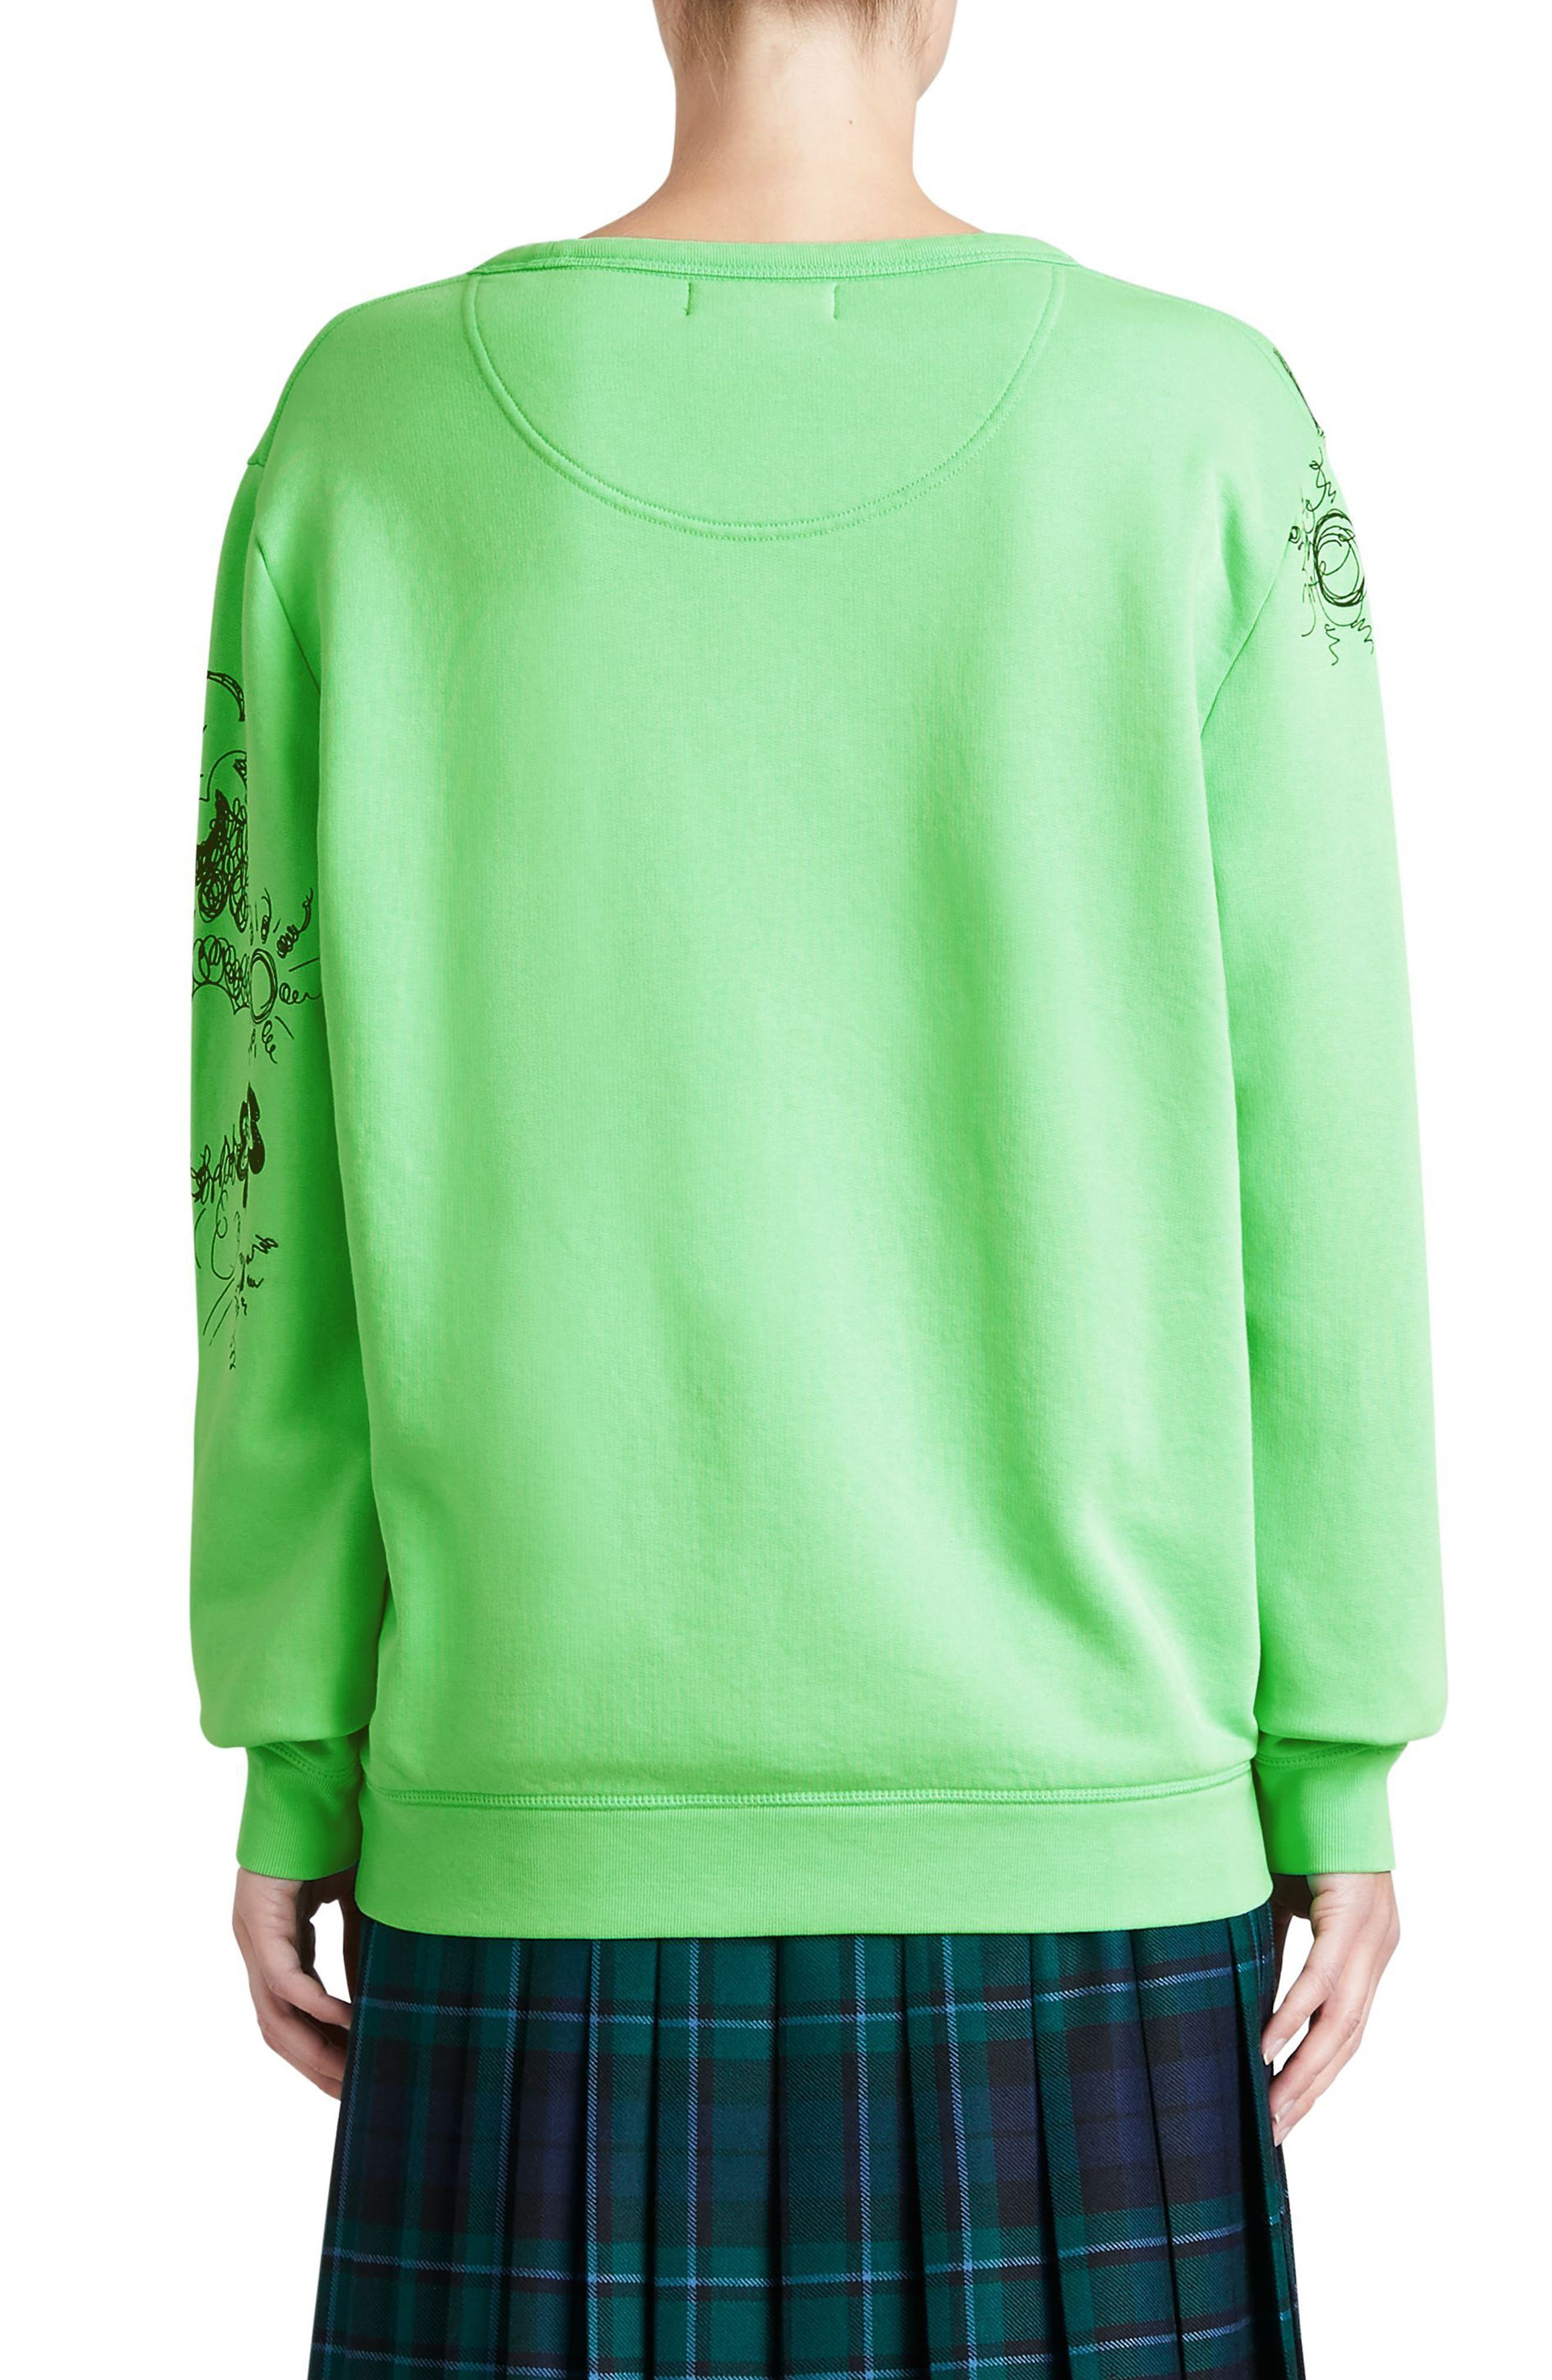 Madon Print Sweatshirt,                             Alternate thumbnail 2, color,                             Bright Apple Green